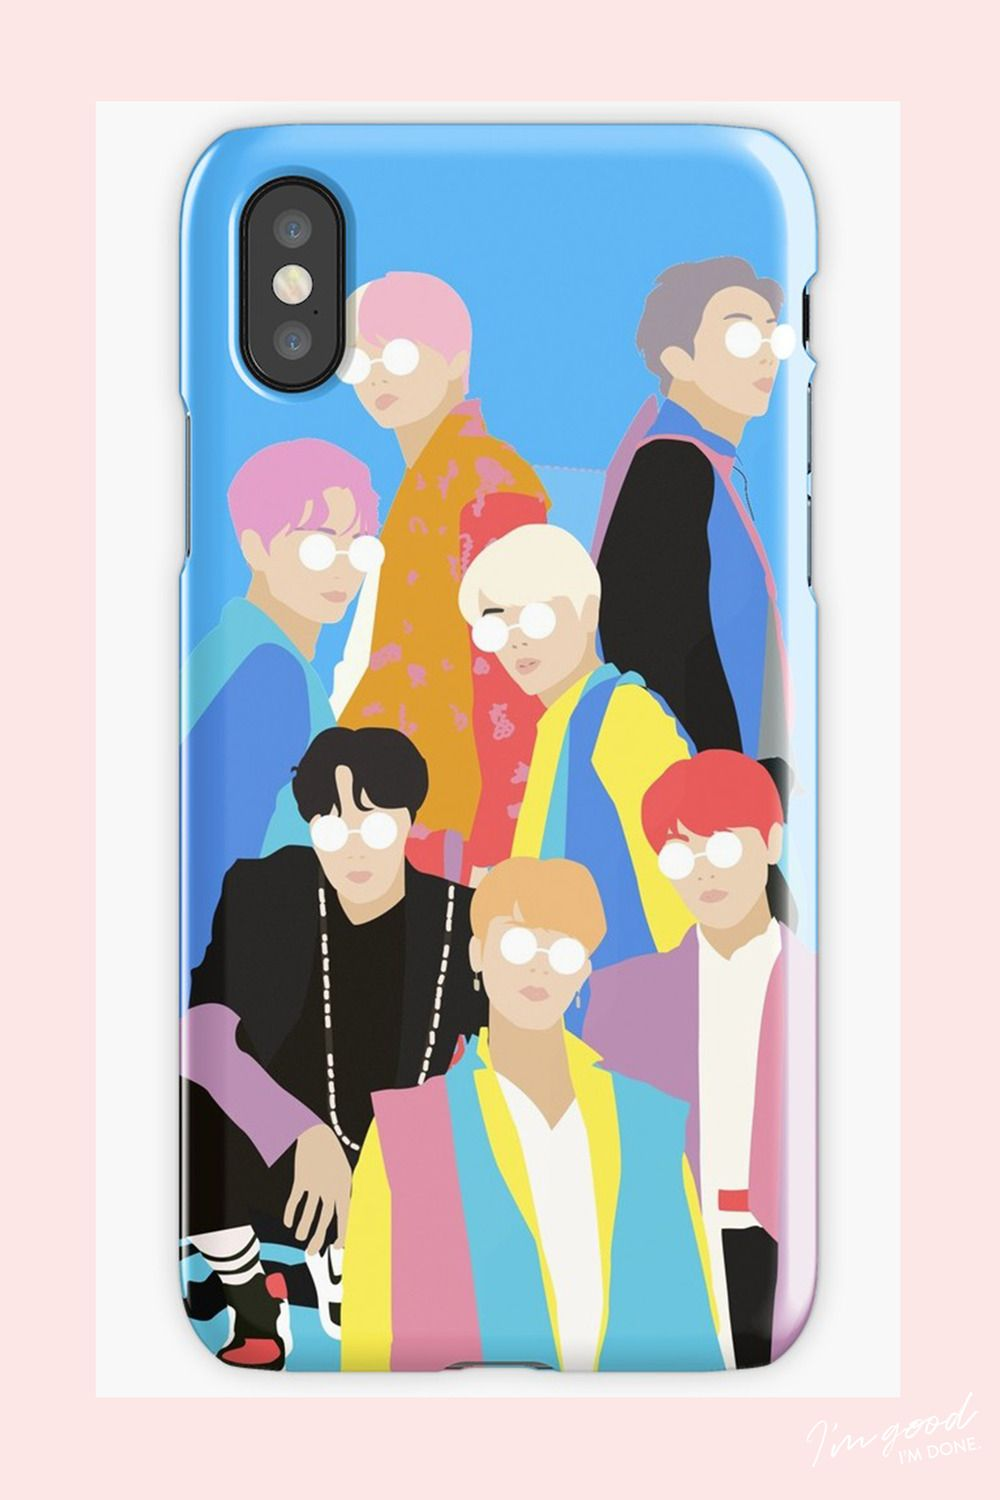 Bts Idol Phone Case For Iphone And Samsung Galaxy Kpop Bts Kpop Phone Cases Bff Phone Cases Phone Cases